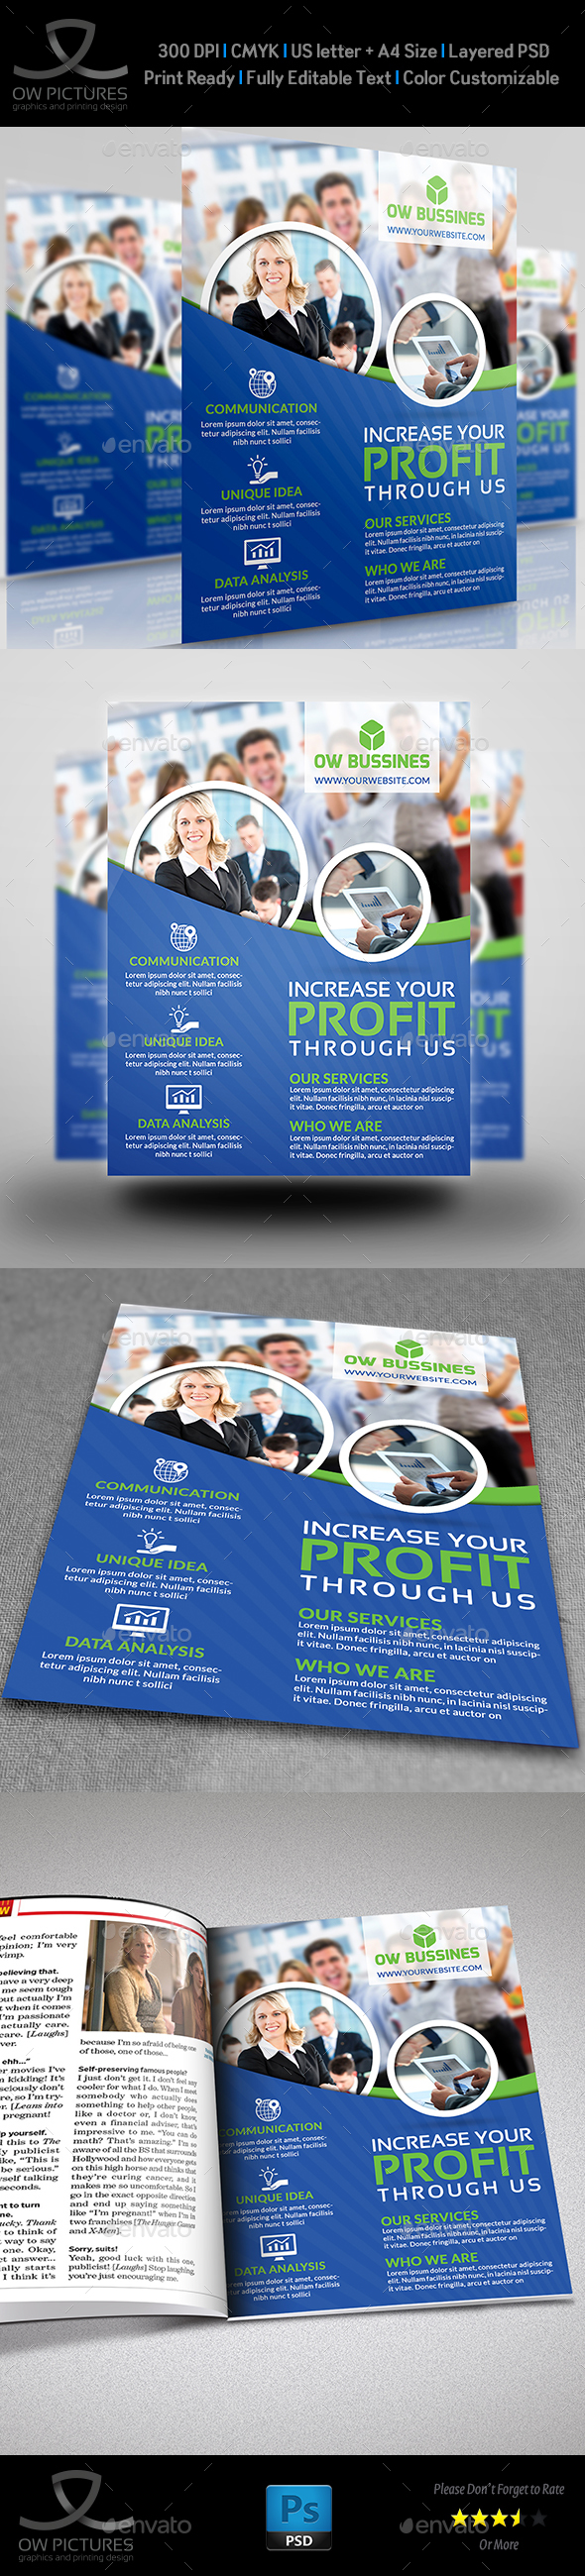 Corporate Business Flyer Template Vol.16 - Corporate Flyers